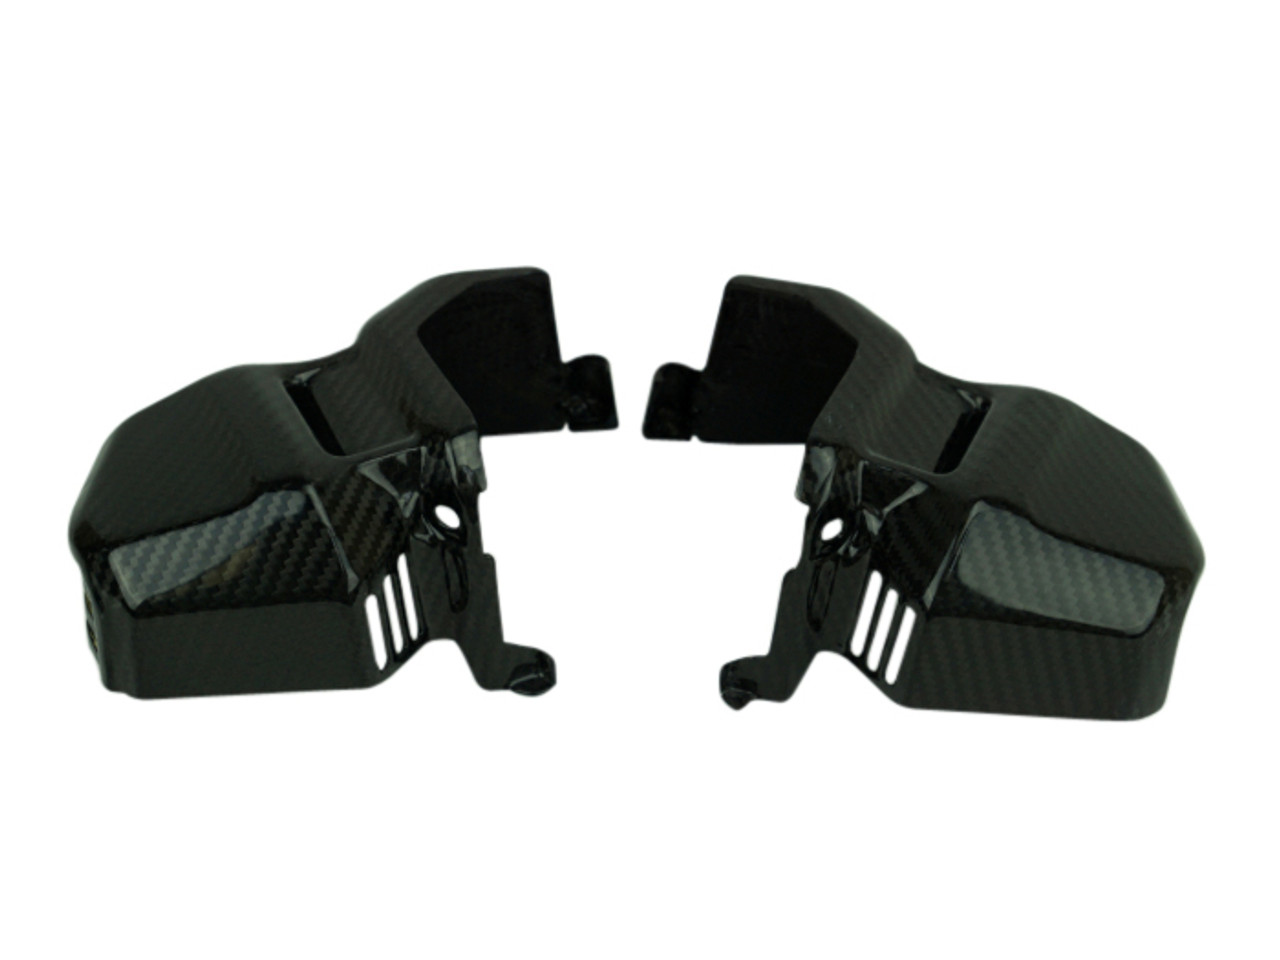 Duct Covers in Glossy Twill Weave Carbon Fiber for Honda CB1000R 2018+